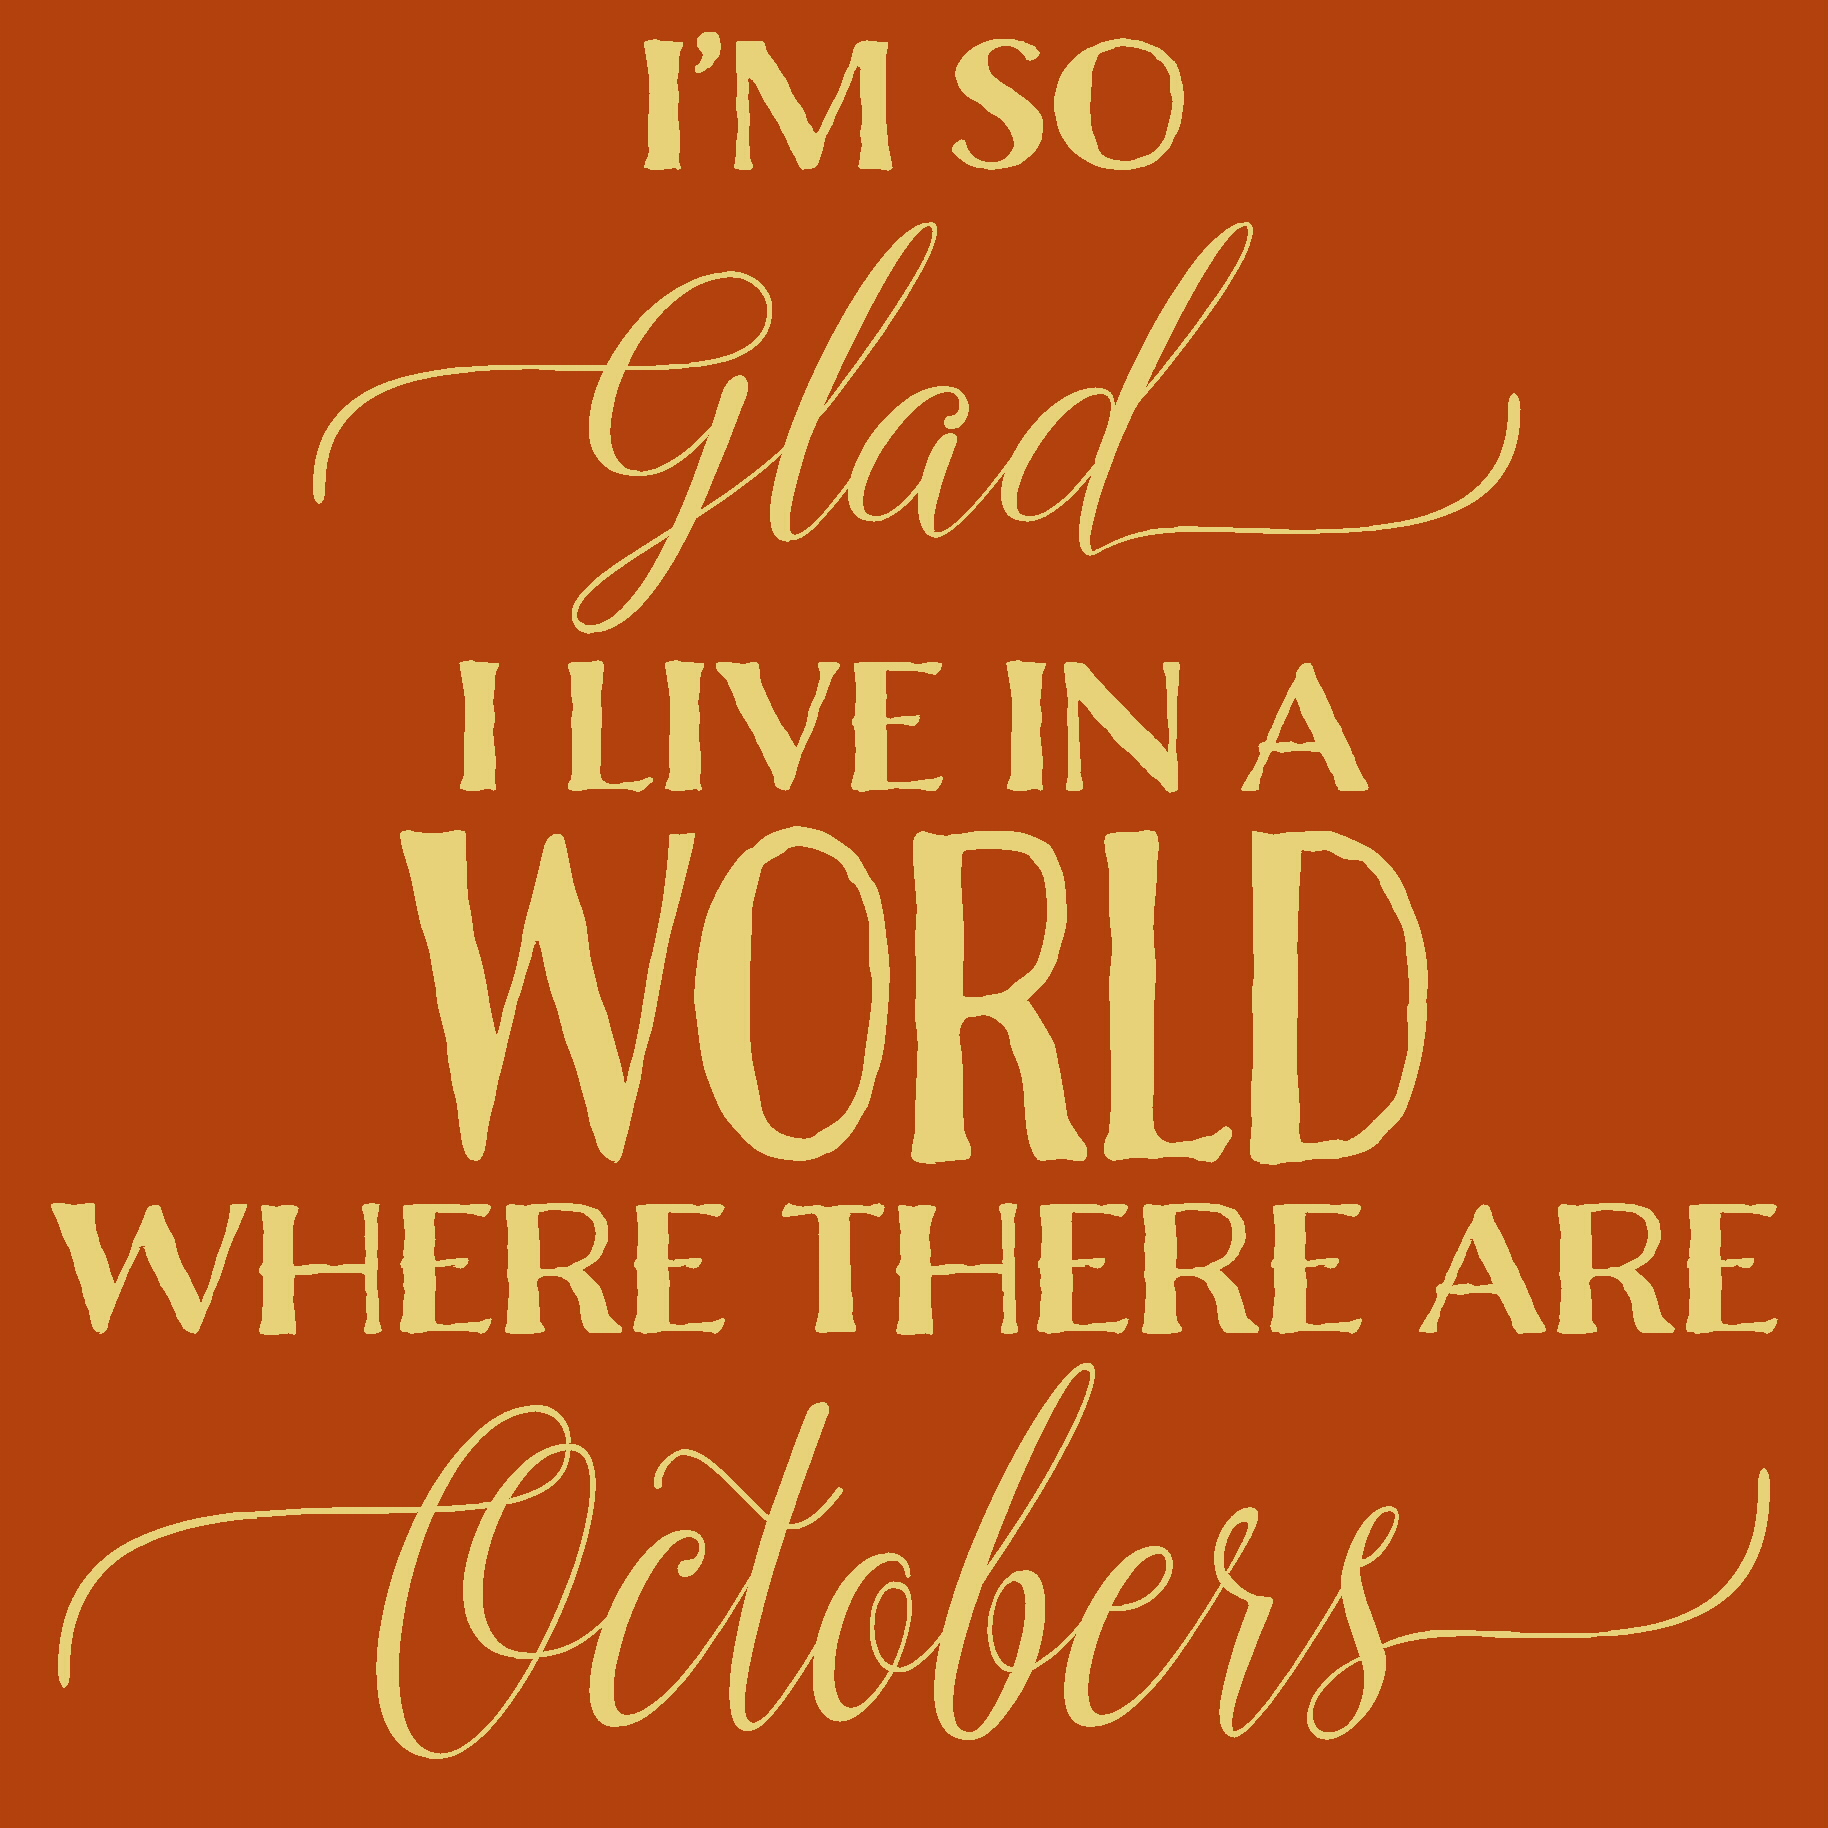 I'm so glad I live In a world were there are Octobers